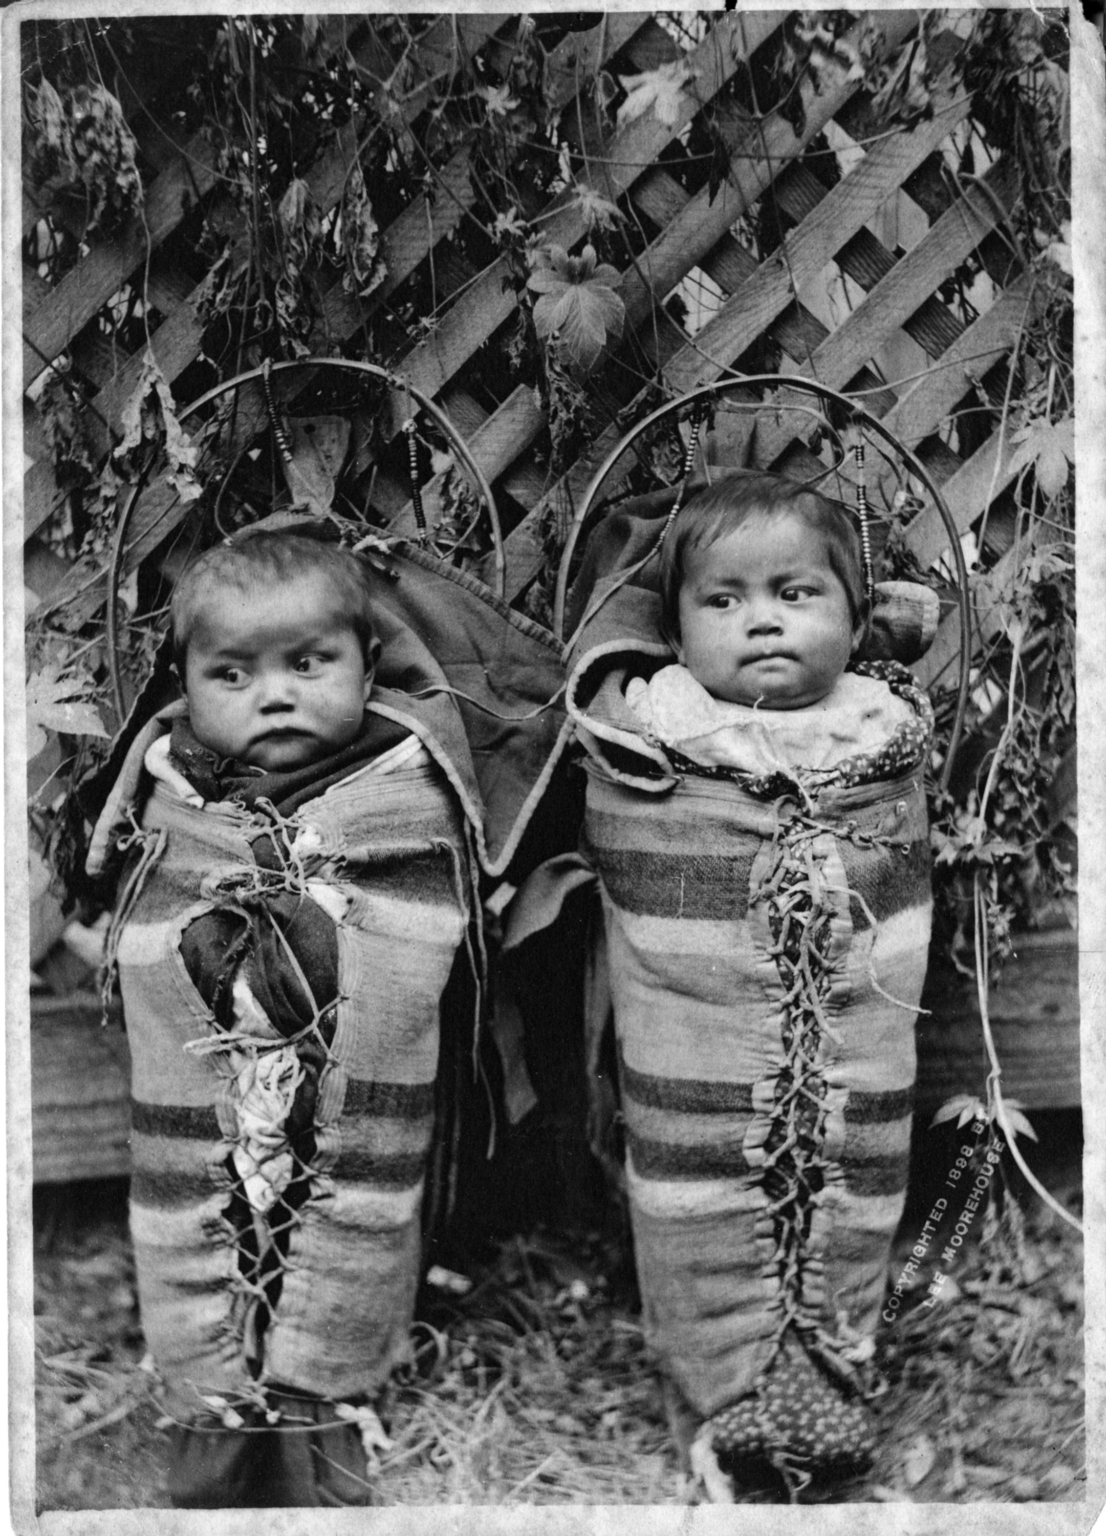 Sioux babies in cradleboards